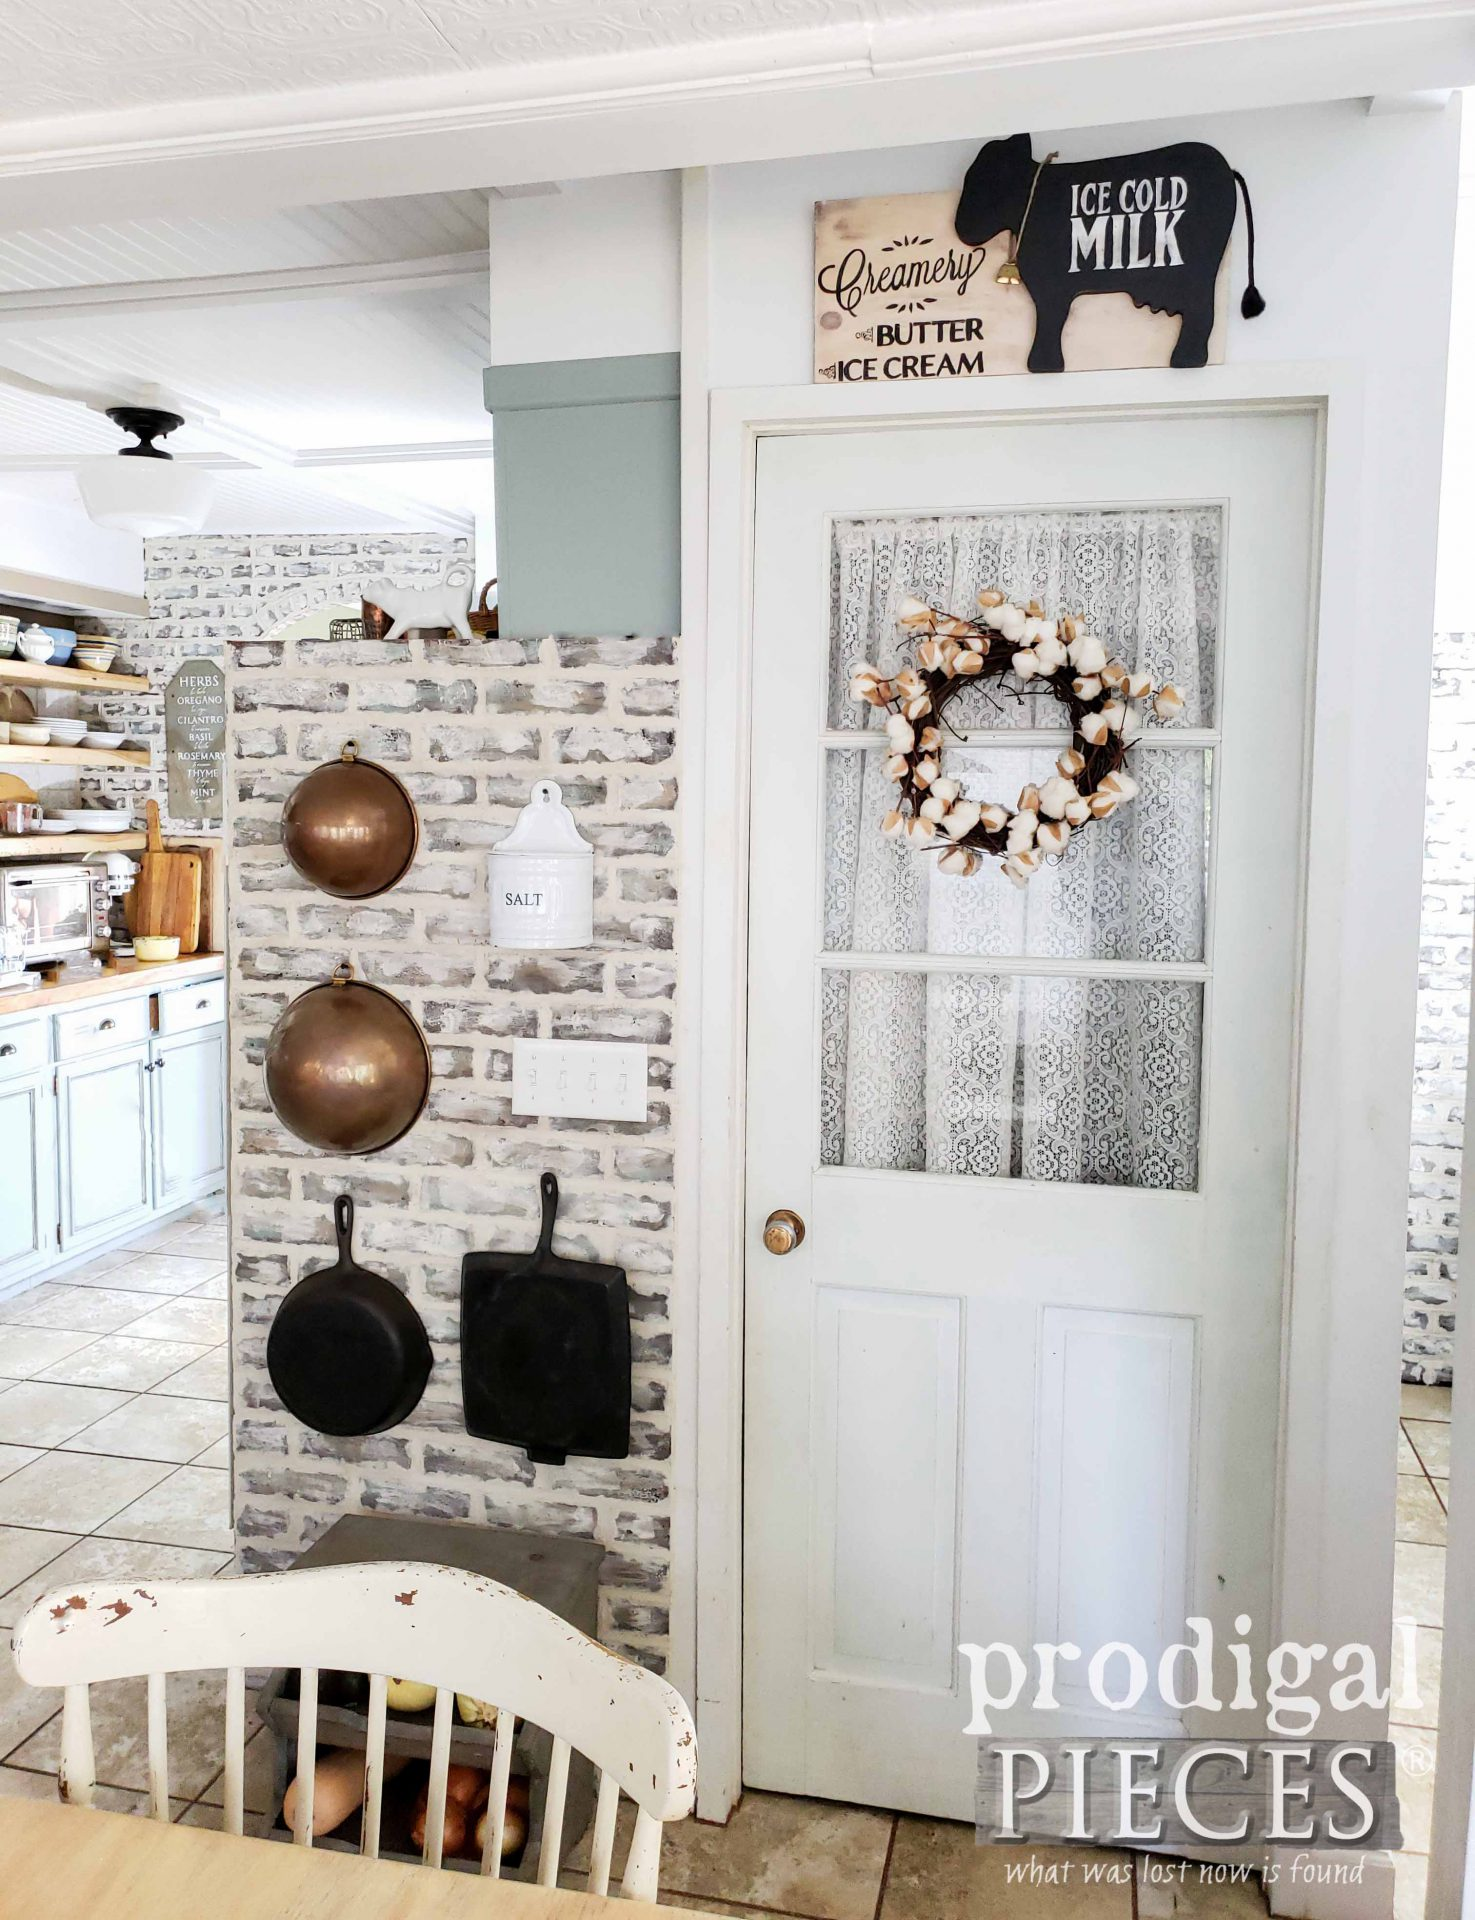 Farmhouse Style Kitchen with Handmade Decor by Larissa of Prodigal Pieces | prodigalpieces.com #prodigalpieces #handmade #farmhouse #home #diy #homedecor